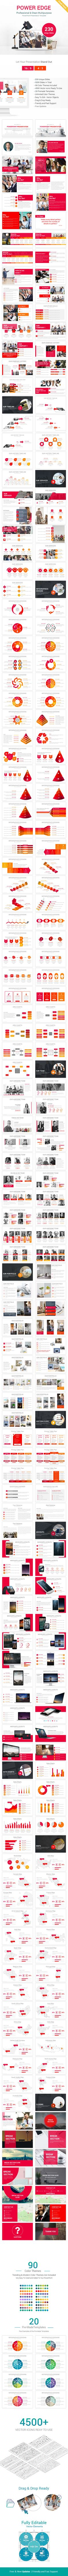 Power Edge PowerPoint Presentation Template by CiloArt Powerpoint Presentations, Powerpoint Presentation Templates, Save Yourself, How To Apply, Graphics, Change, Content, Simple, Unique